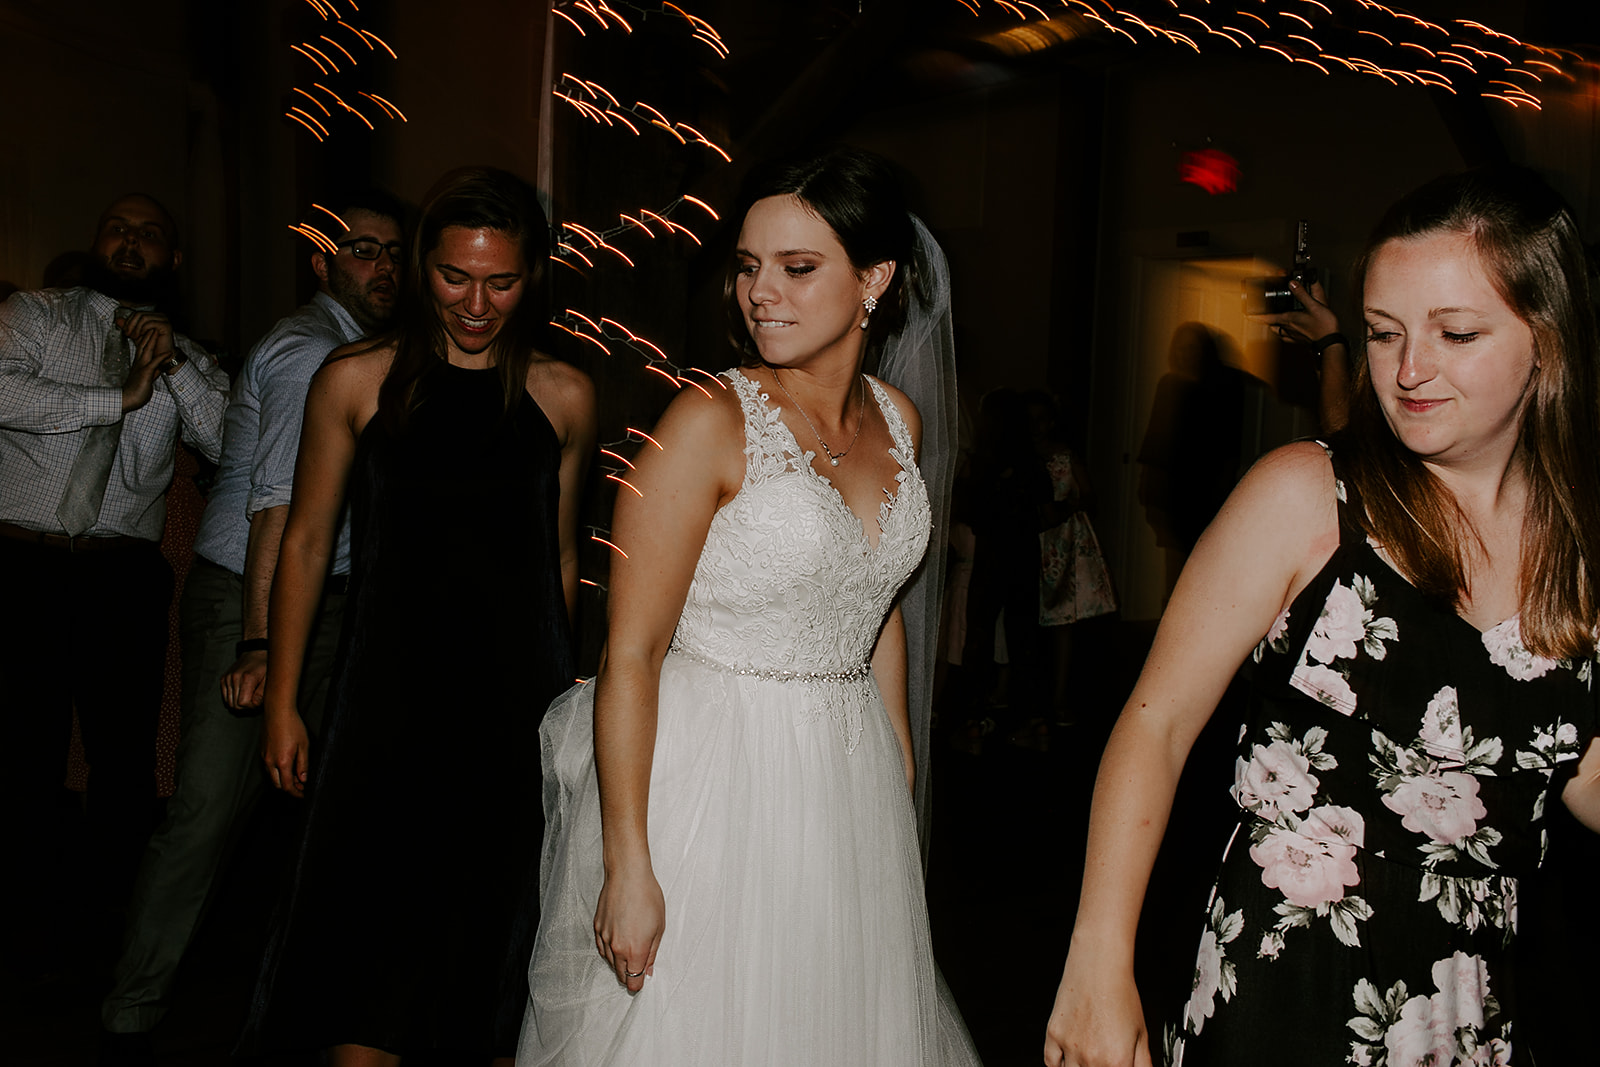 Kendra_and_Mattew_Indiana_Wedding_by_Emily_Wehner-978.jpg